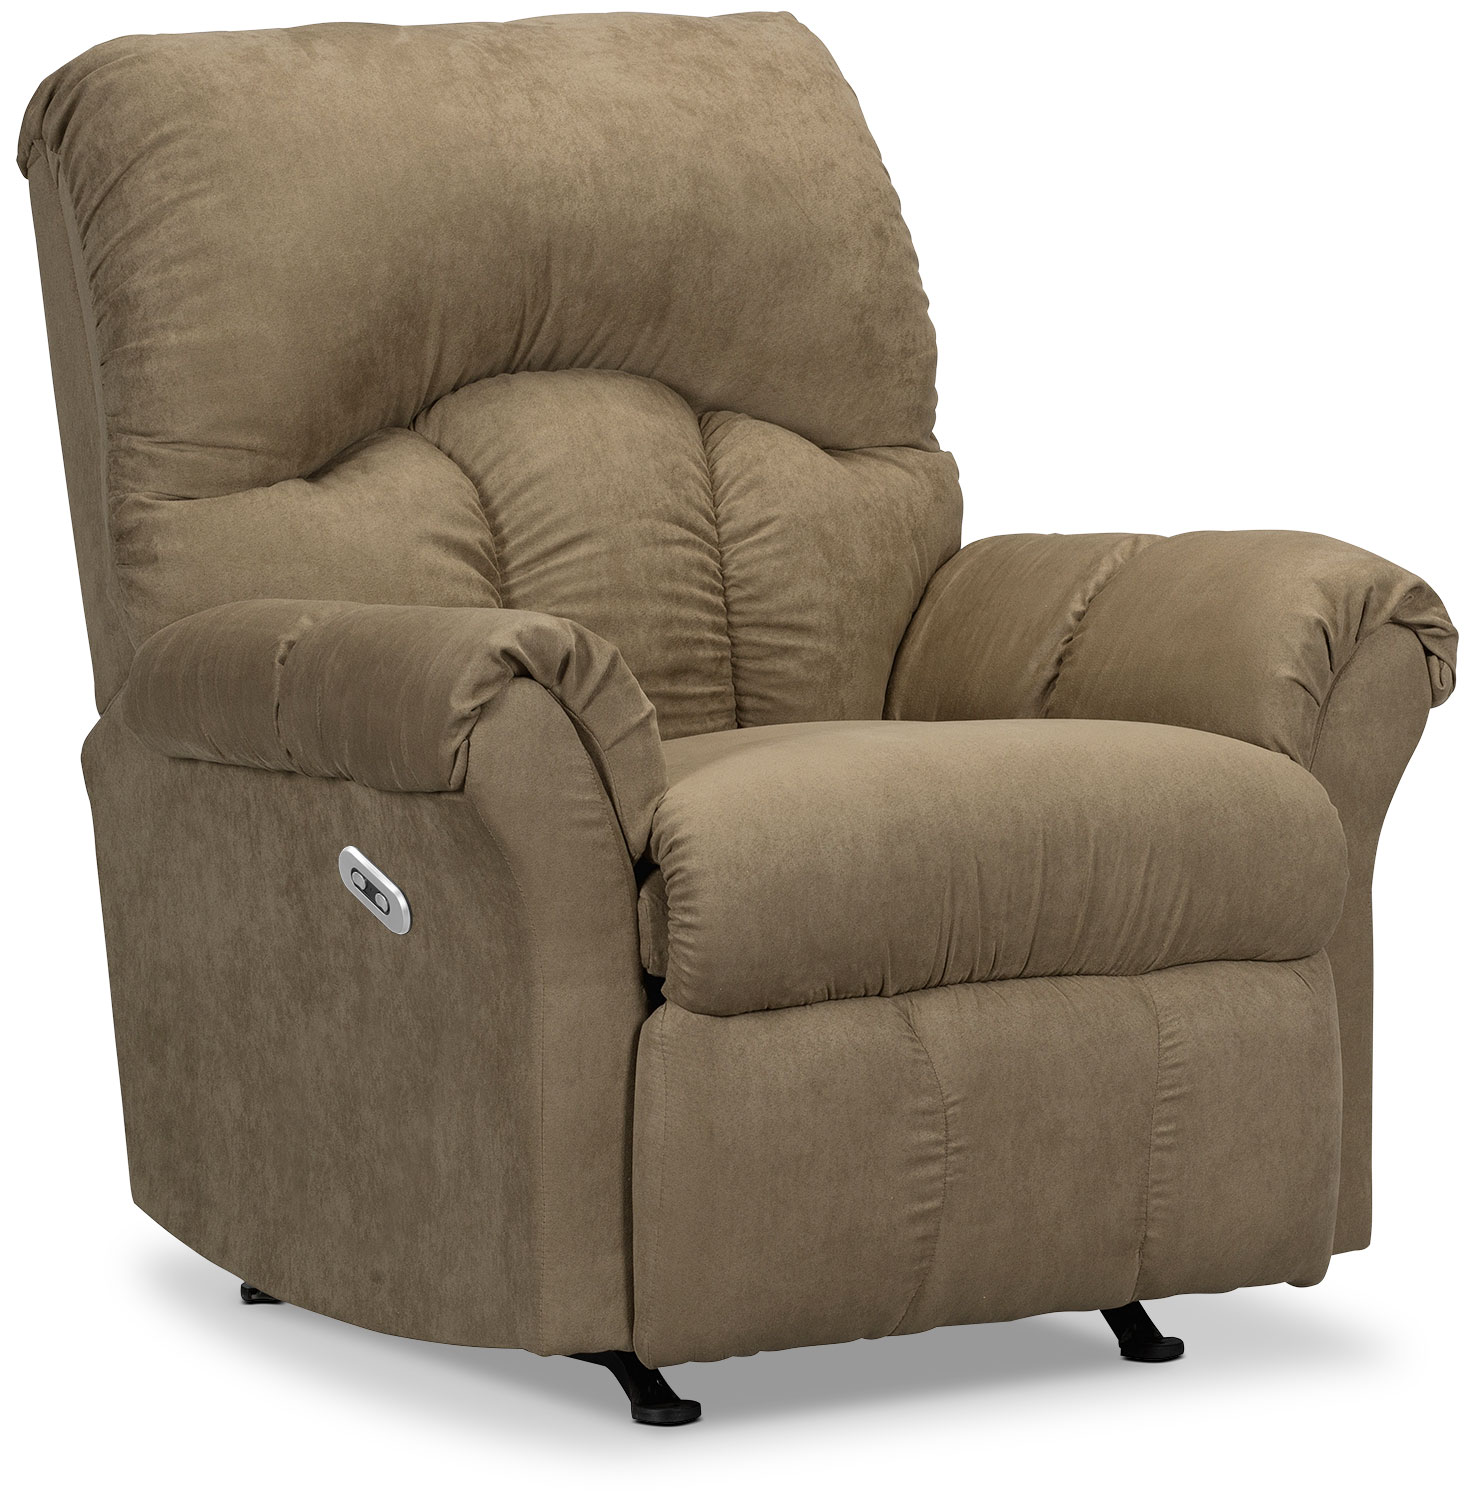 Designed2B Recliner 6734 Microsuede Power Reclining Chair - Mocha